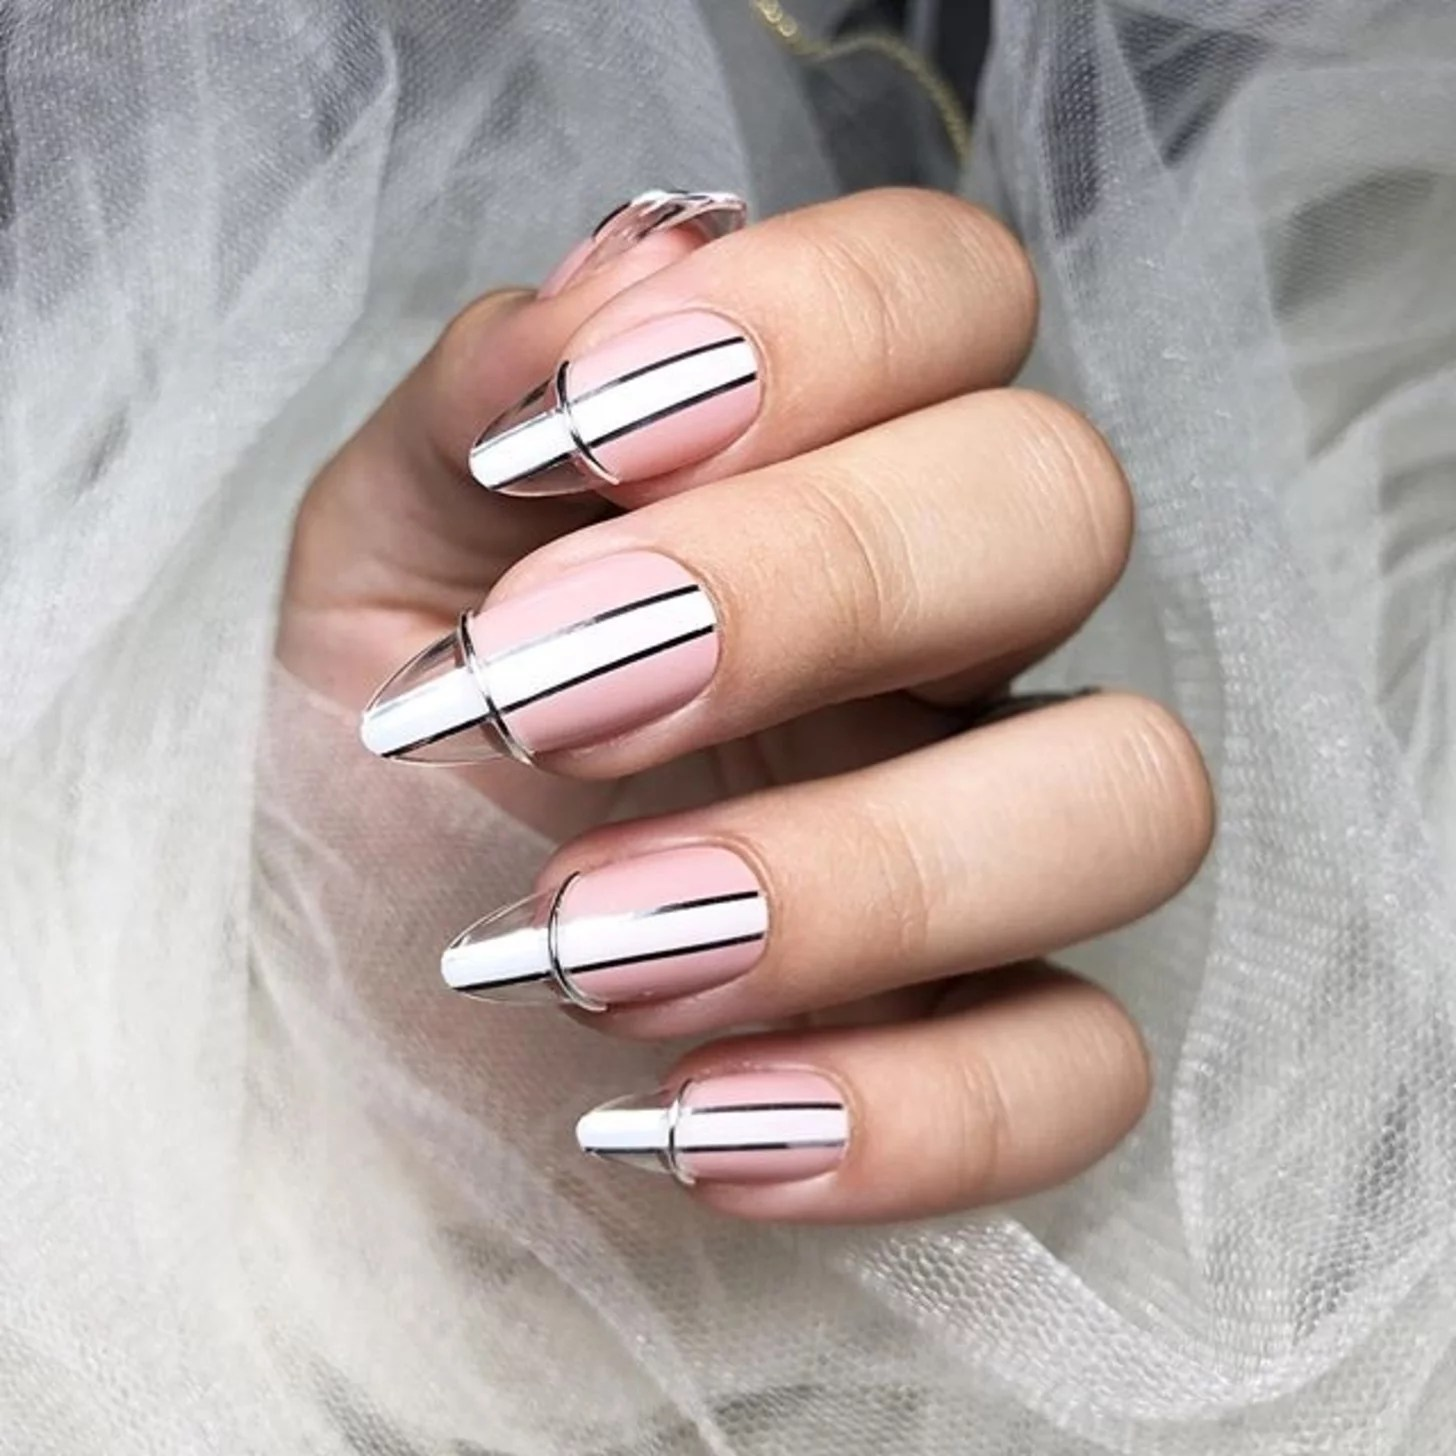 Floating French Tip Manicure Trend For Fall 2019 Popsugar Beauty